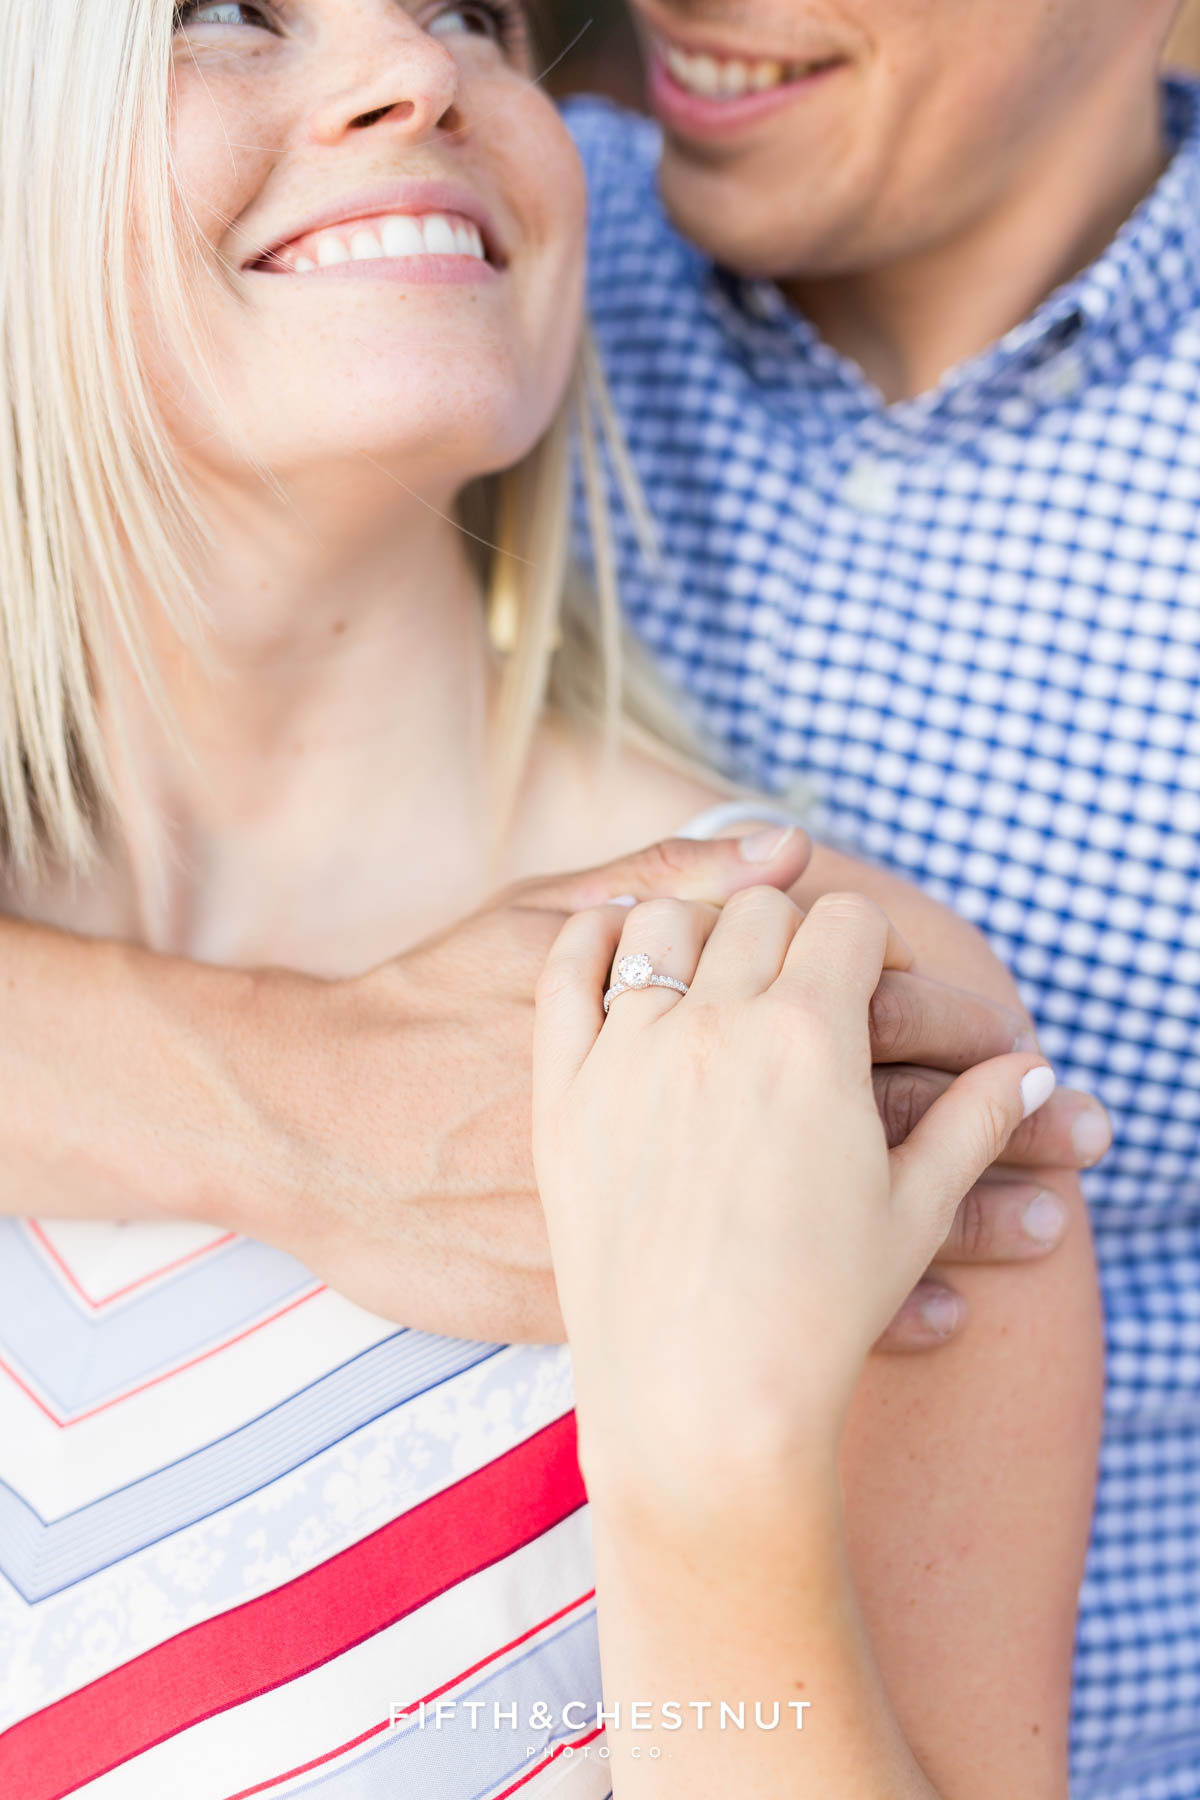 bride-to-be looks up to her groom as she shows off her gorgeous engagement ring